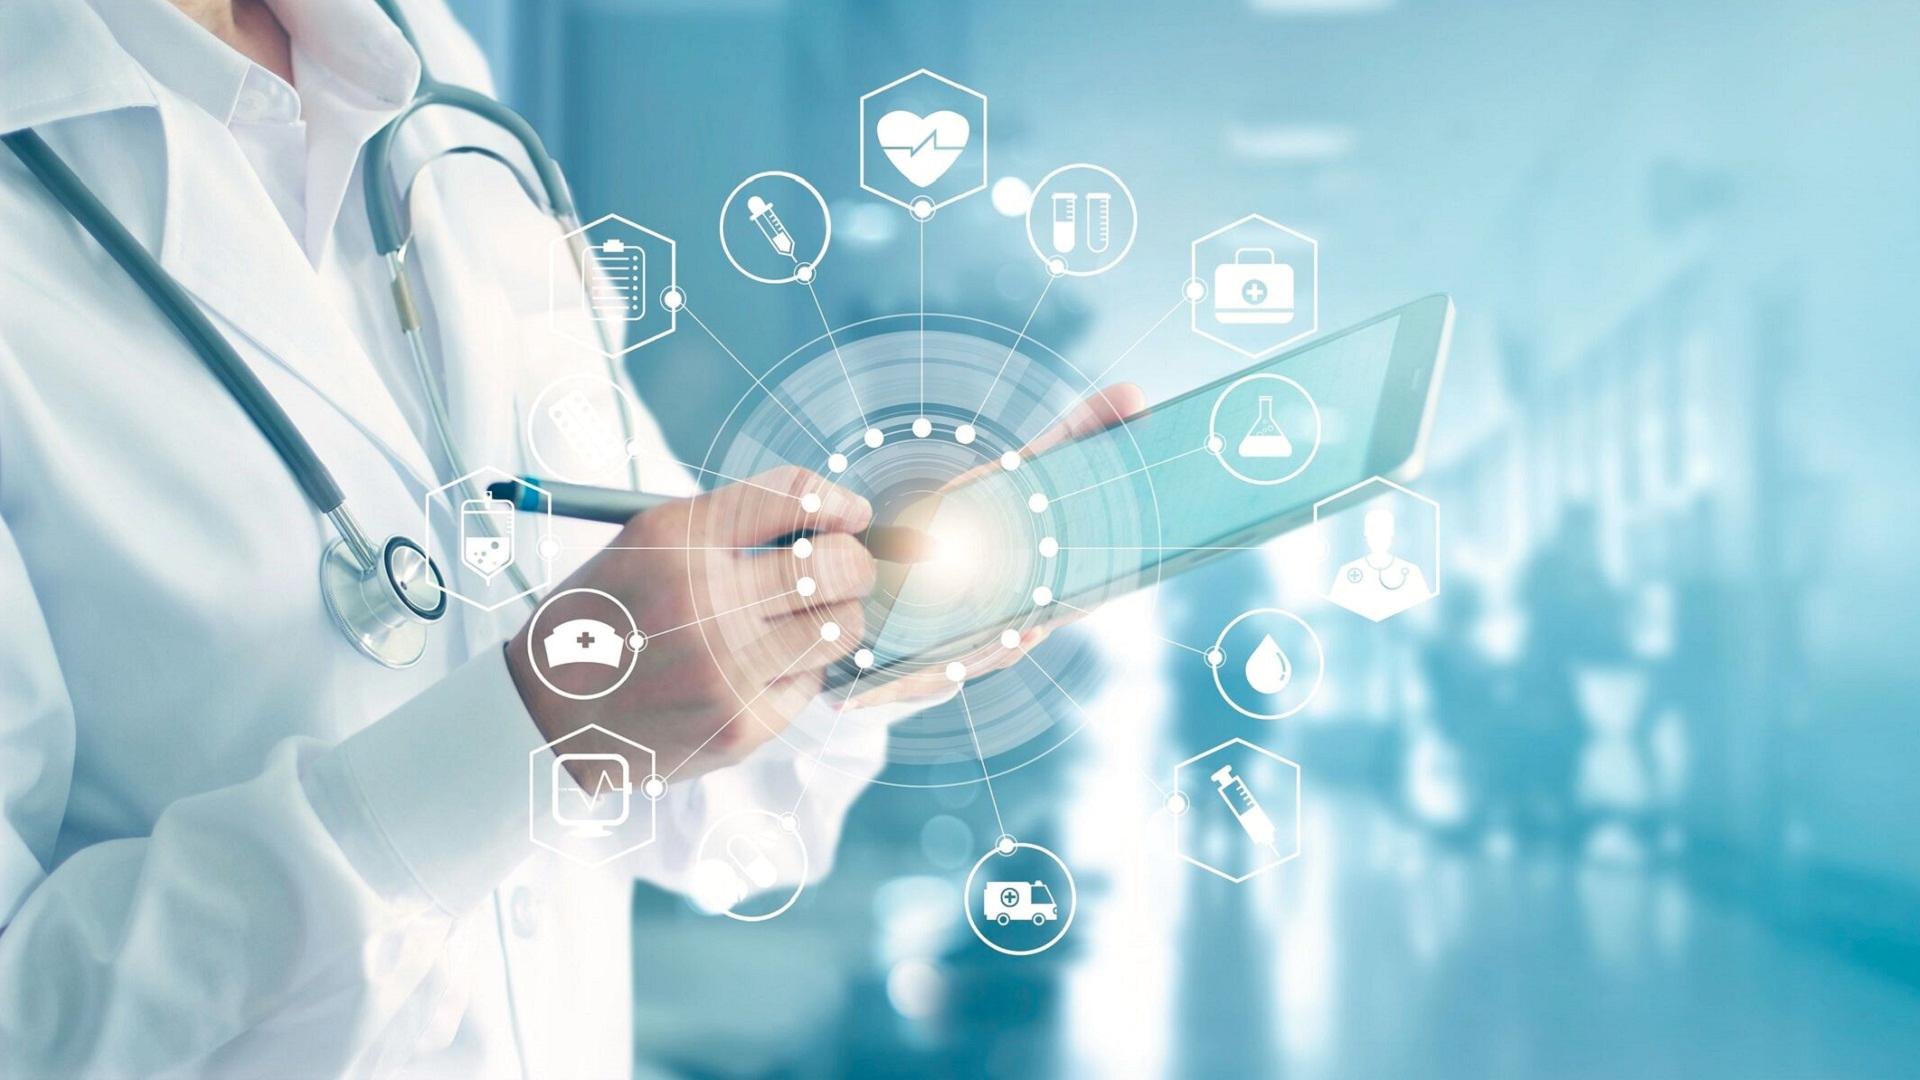 futuristic image of a doctor holding a tablet and different healthcare related app symbols visualized around the clinicians' hand